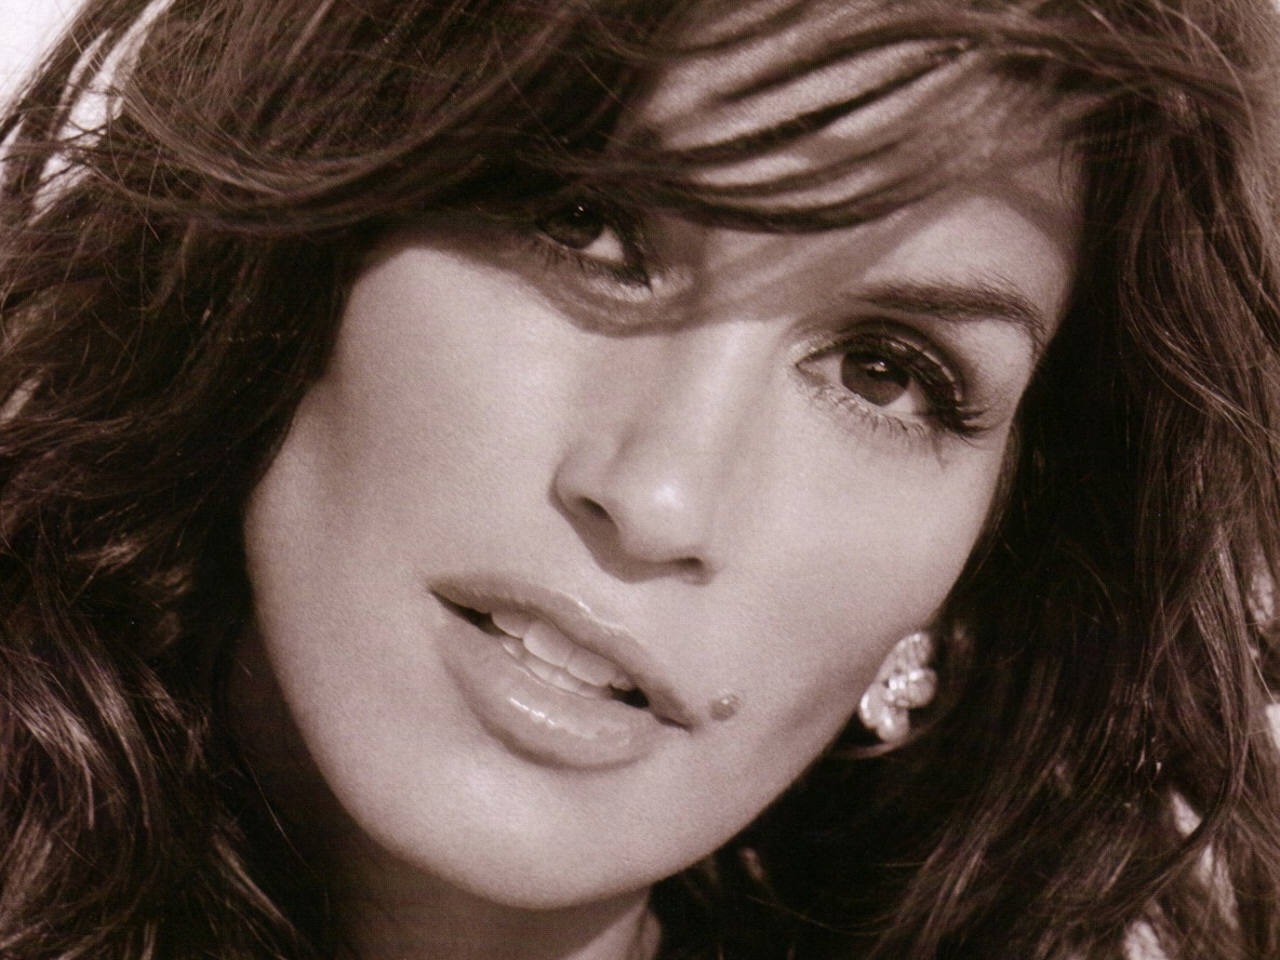 Cindy Crawford Sexy Wallpapers Free Download Bikinisexy -3694